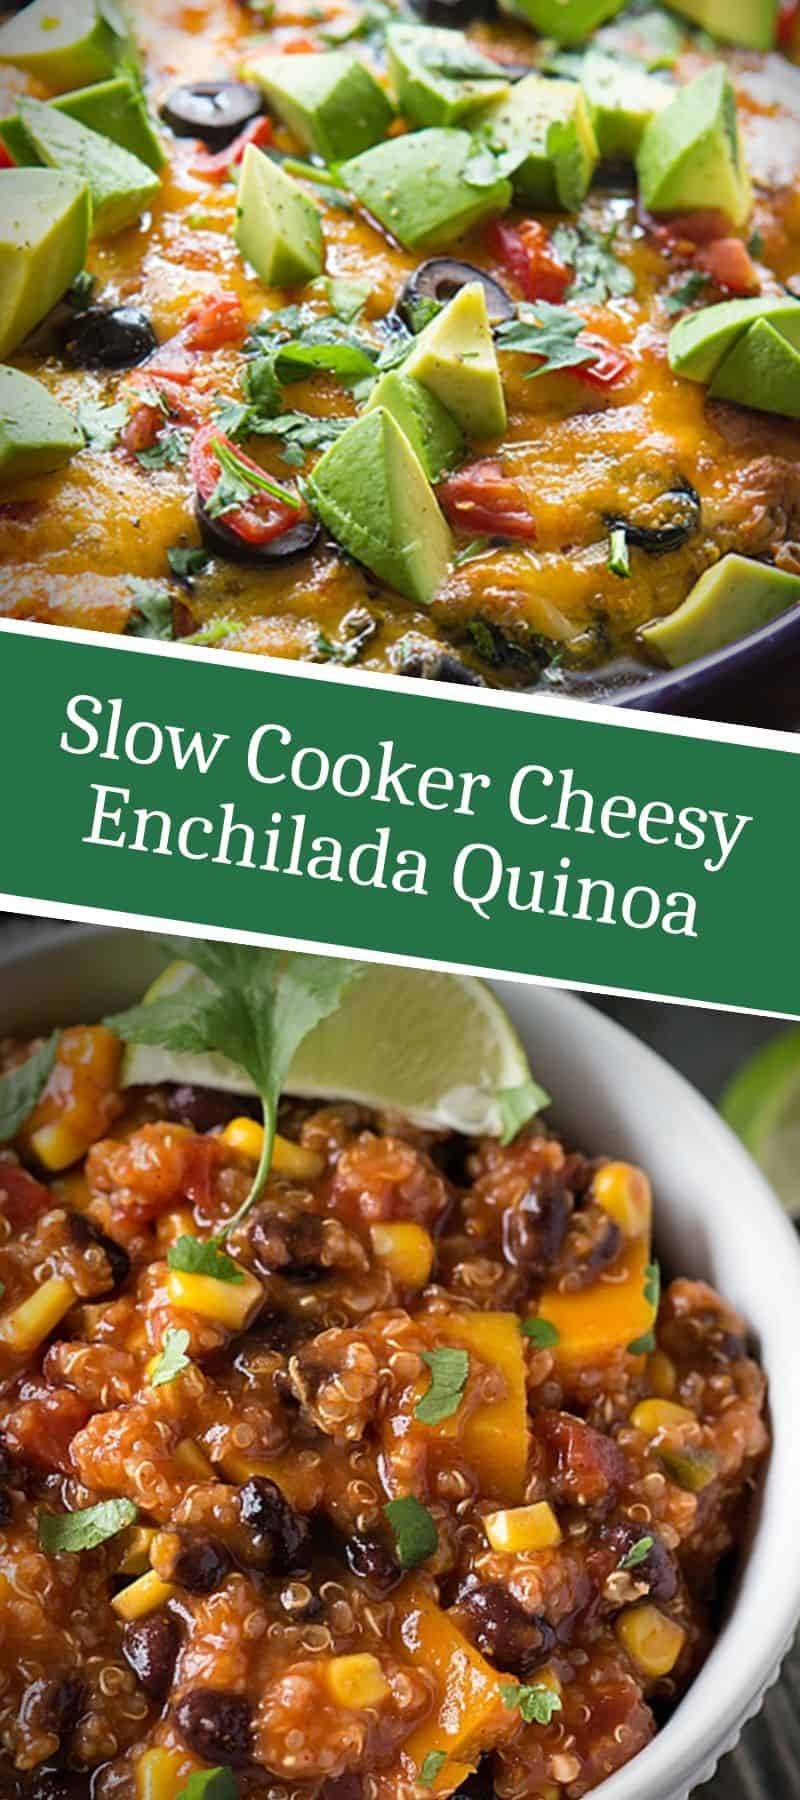 Slow Cooker Cheesy Enchilada Quinoa 3